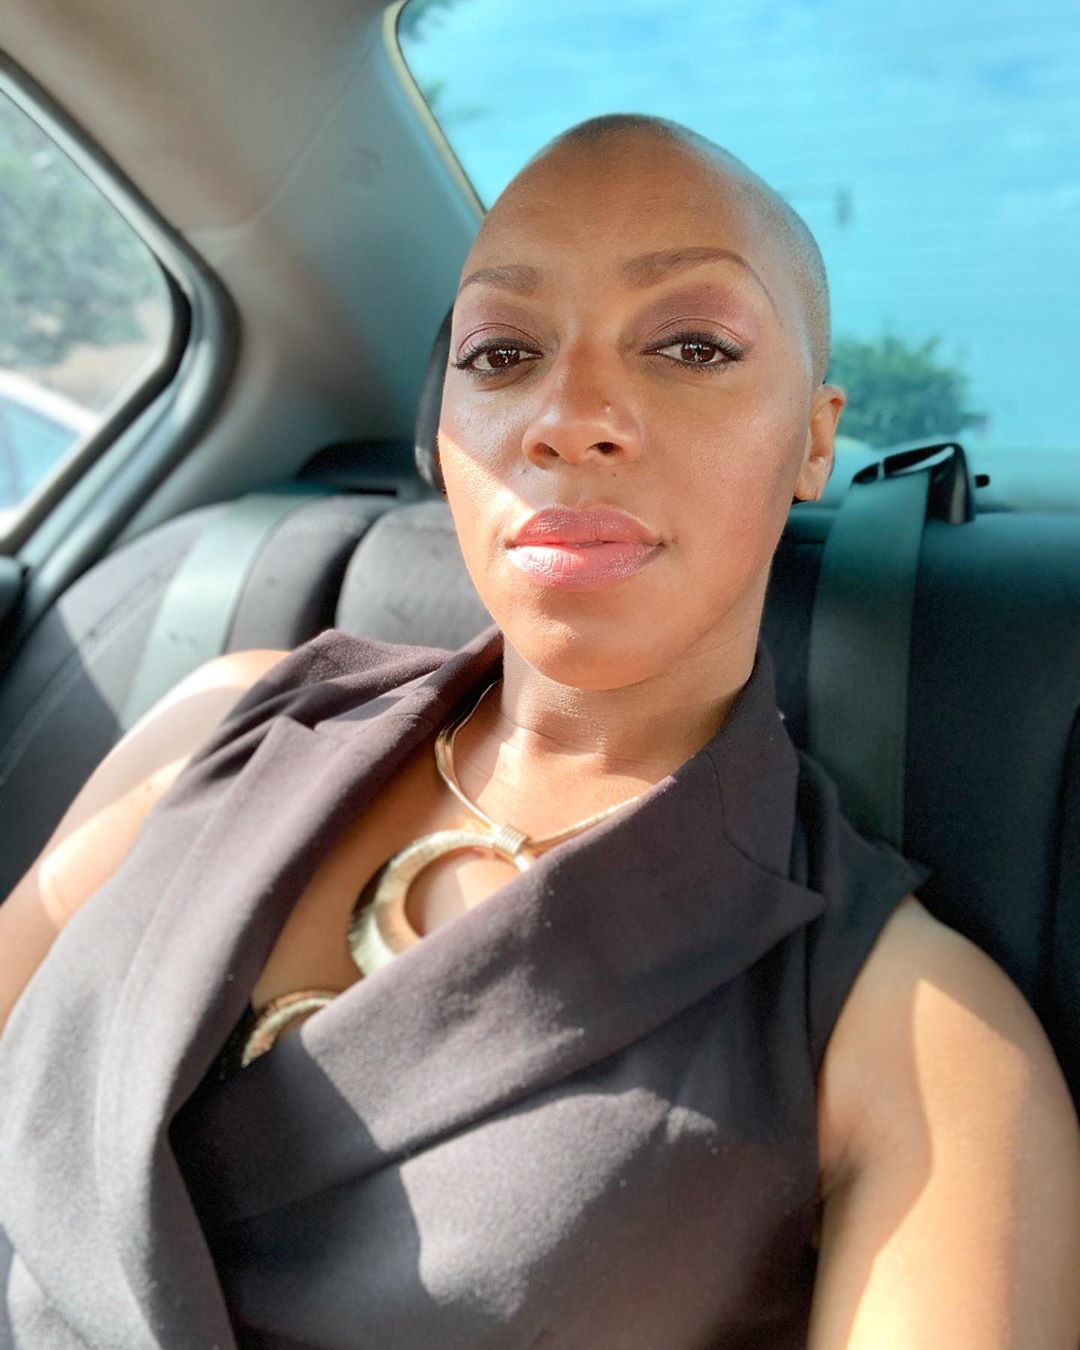 21 Bald Black Women That Make Us Want To Shave Our Heads - Essence